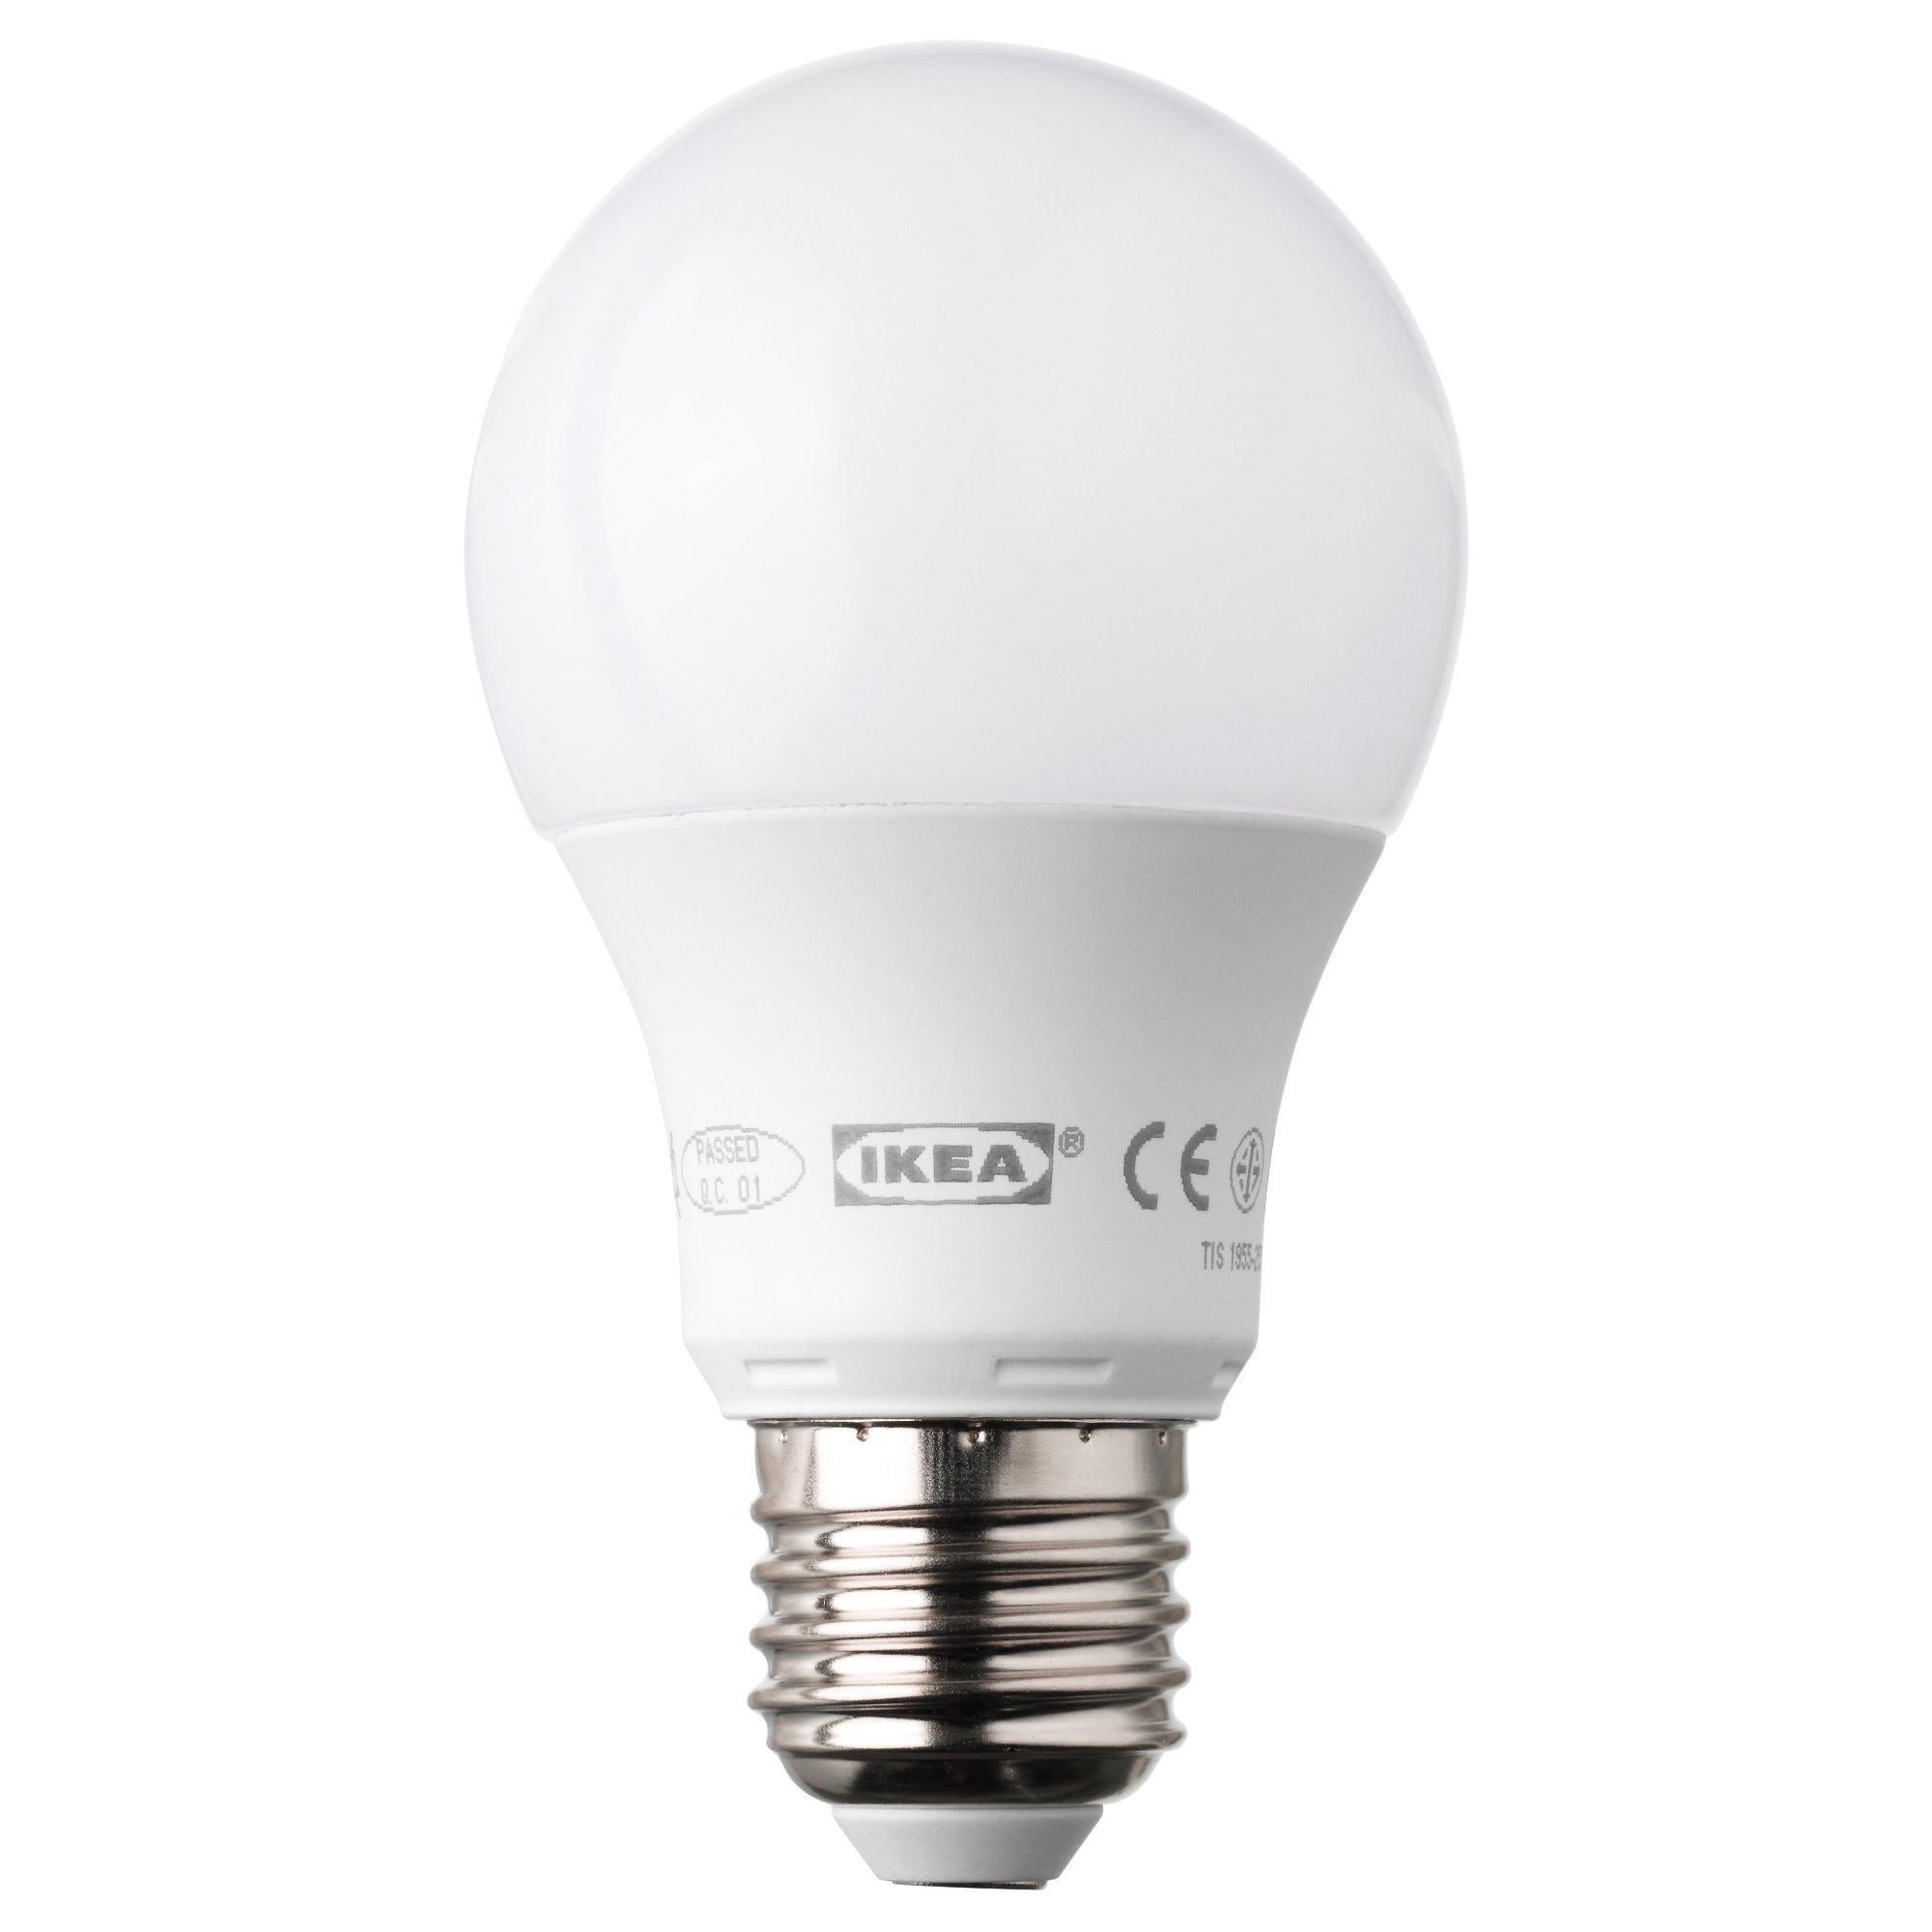 Light bulbs accessories lighting ikea ledare led bulb e27 400 lumen parisarafo Gallery